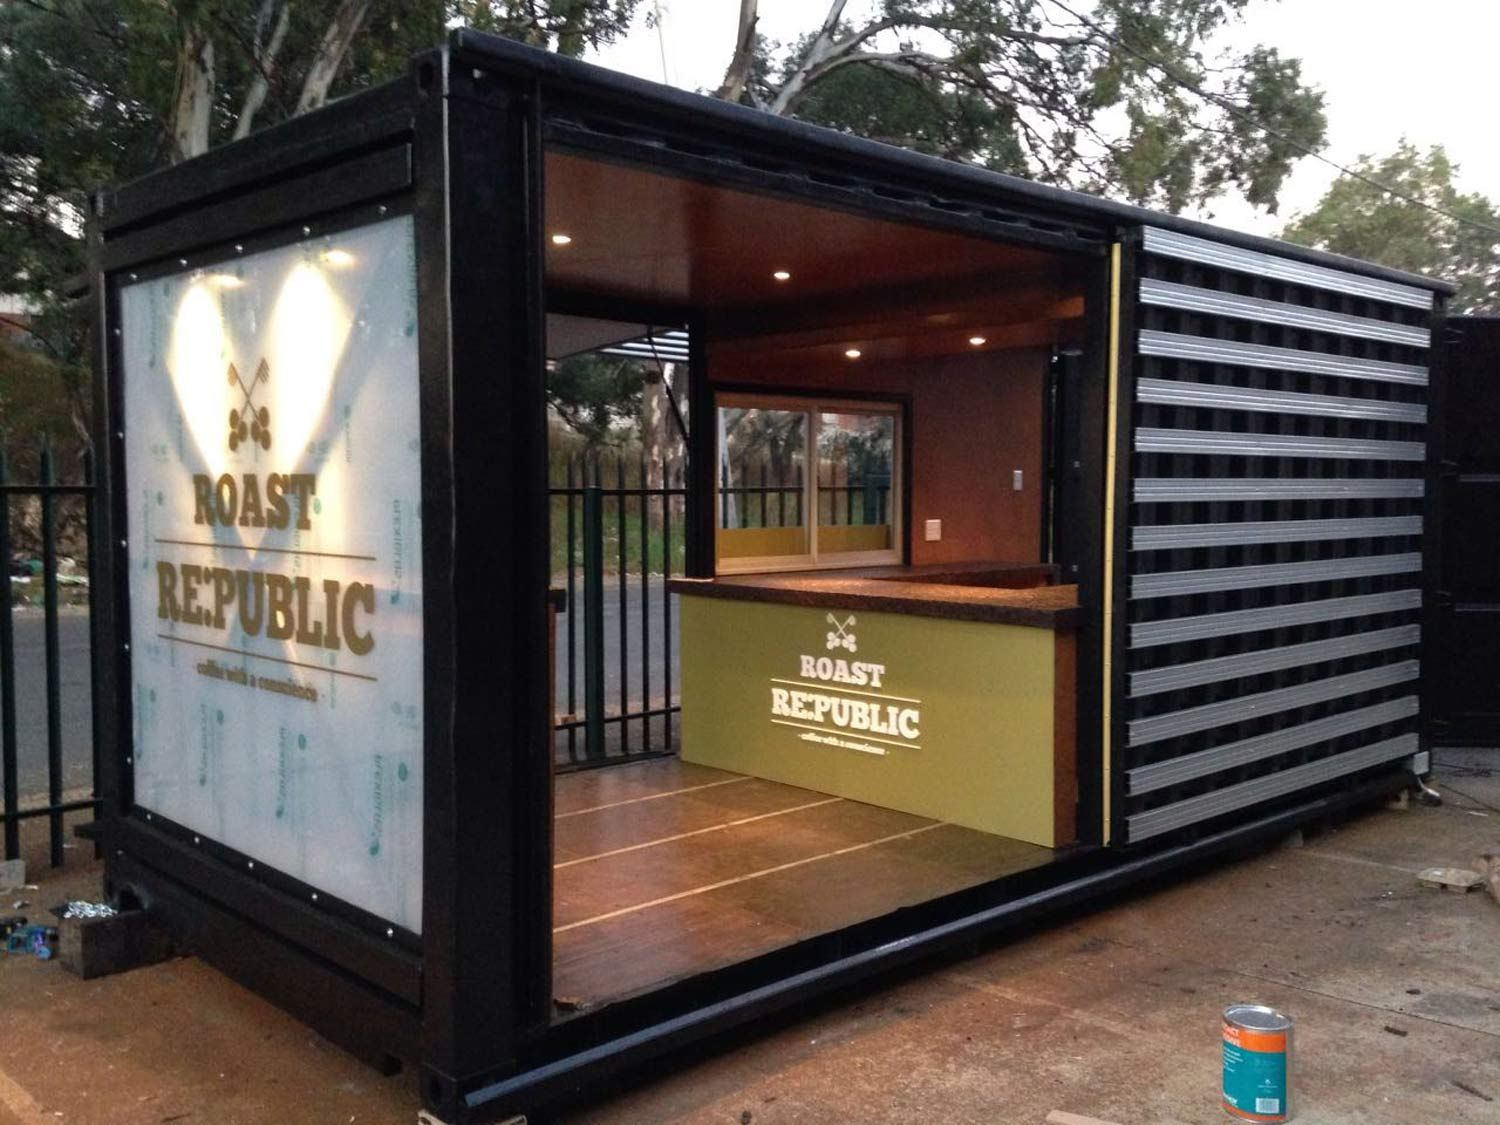 Desain Cafe Container Old Shipping Container Is Converted Into A Chic Coffee Shop In